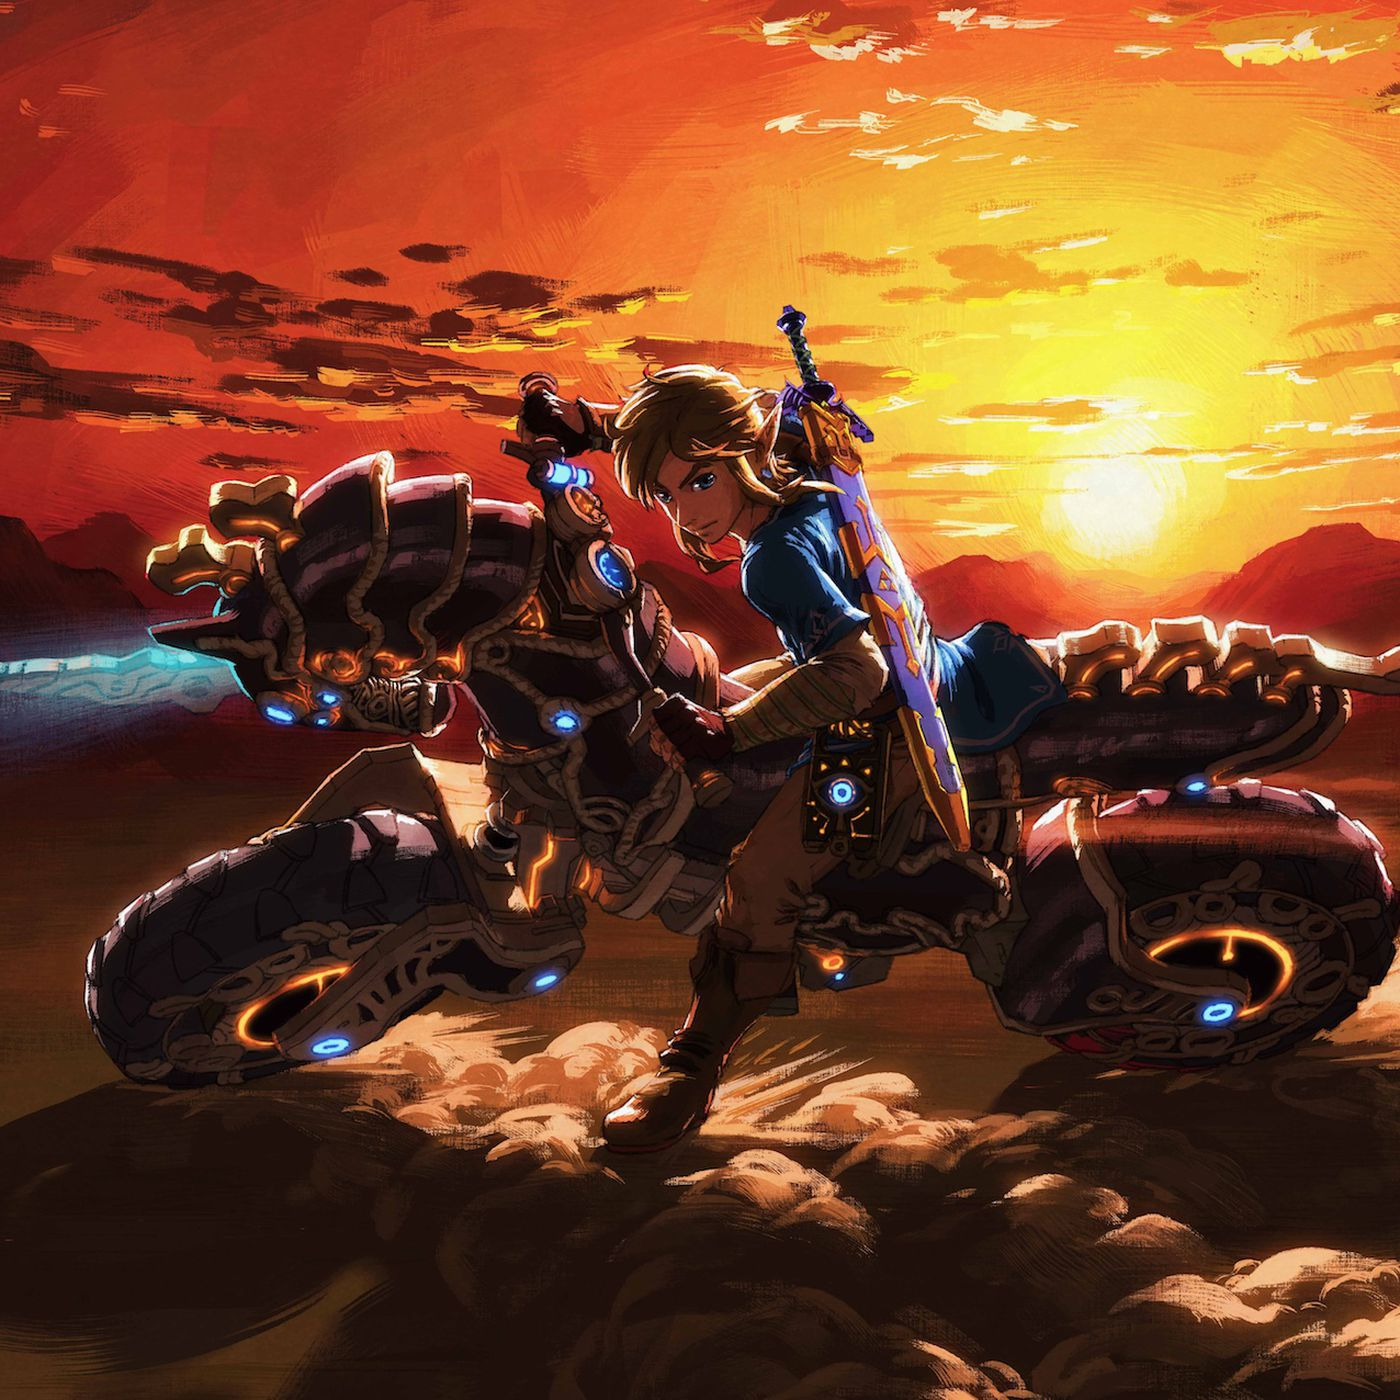 Mario Kart 8 Deluxe update adds Link from Breath of the Wild - Polygon